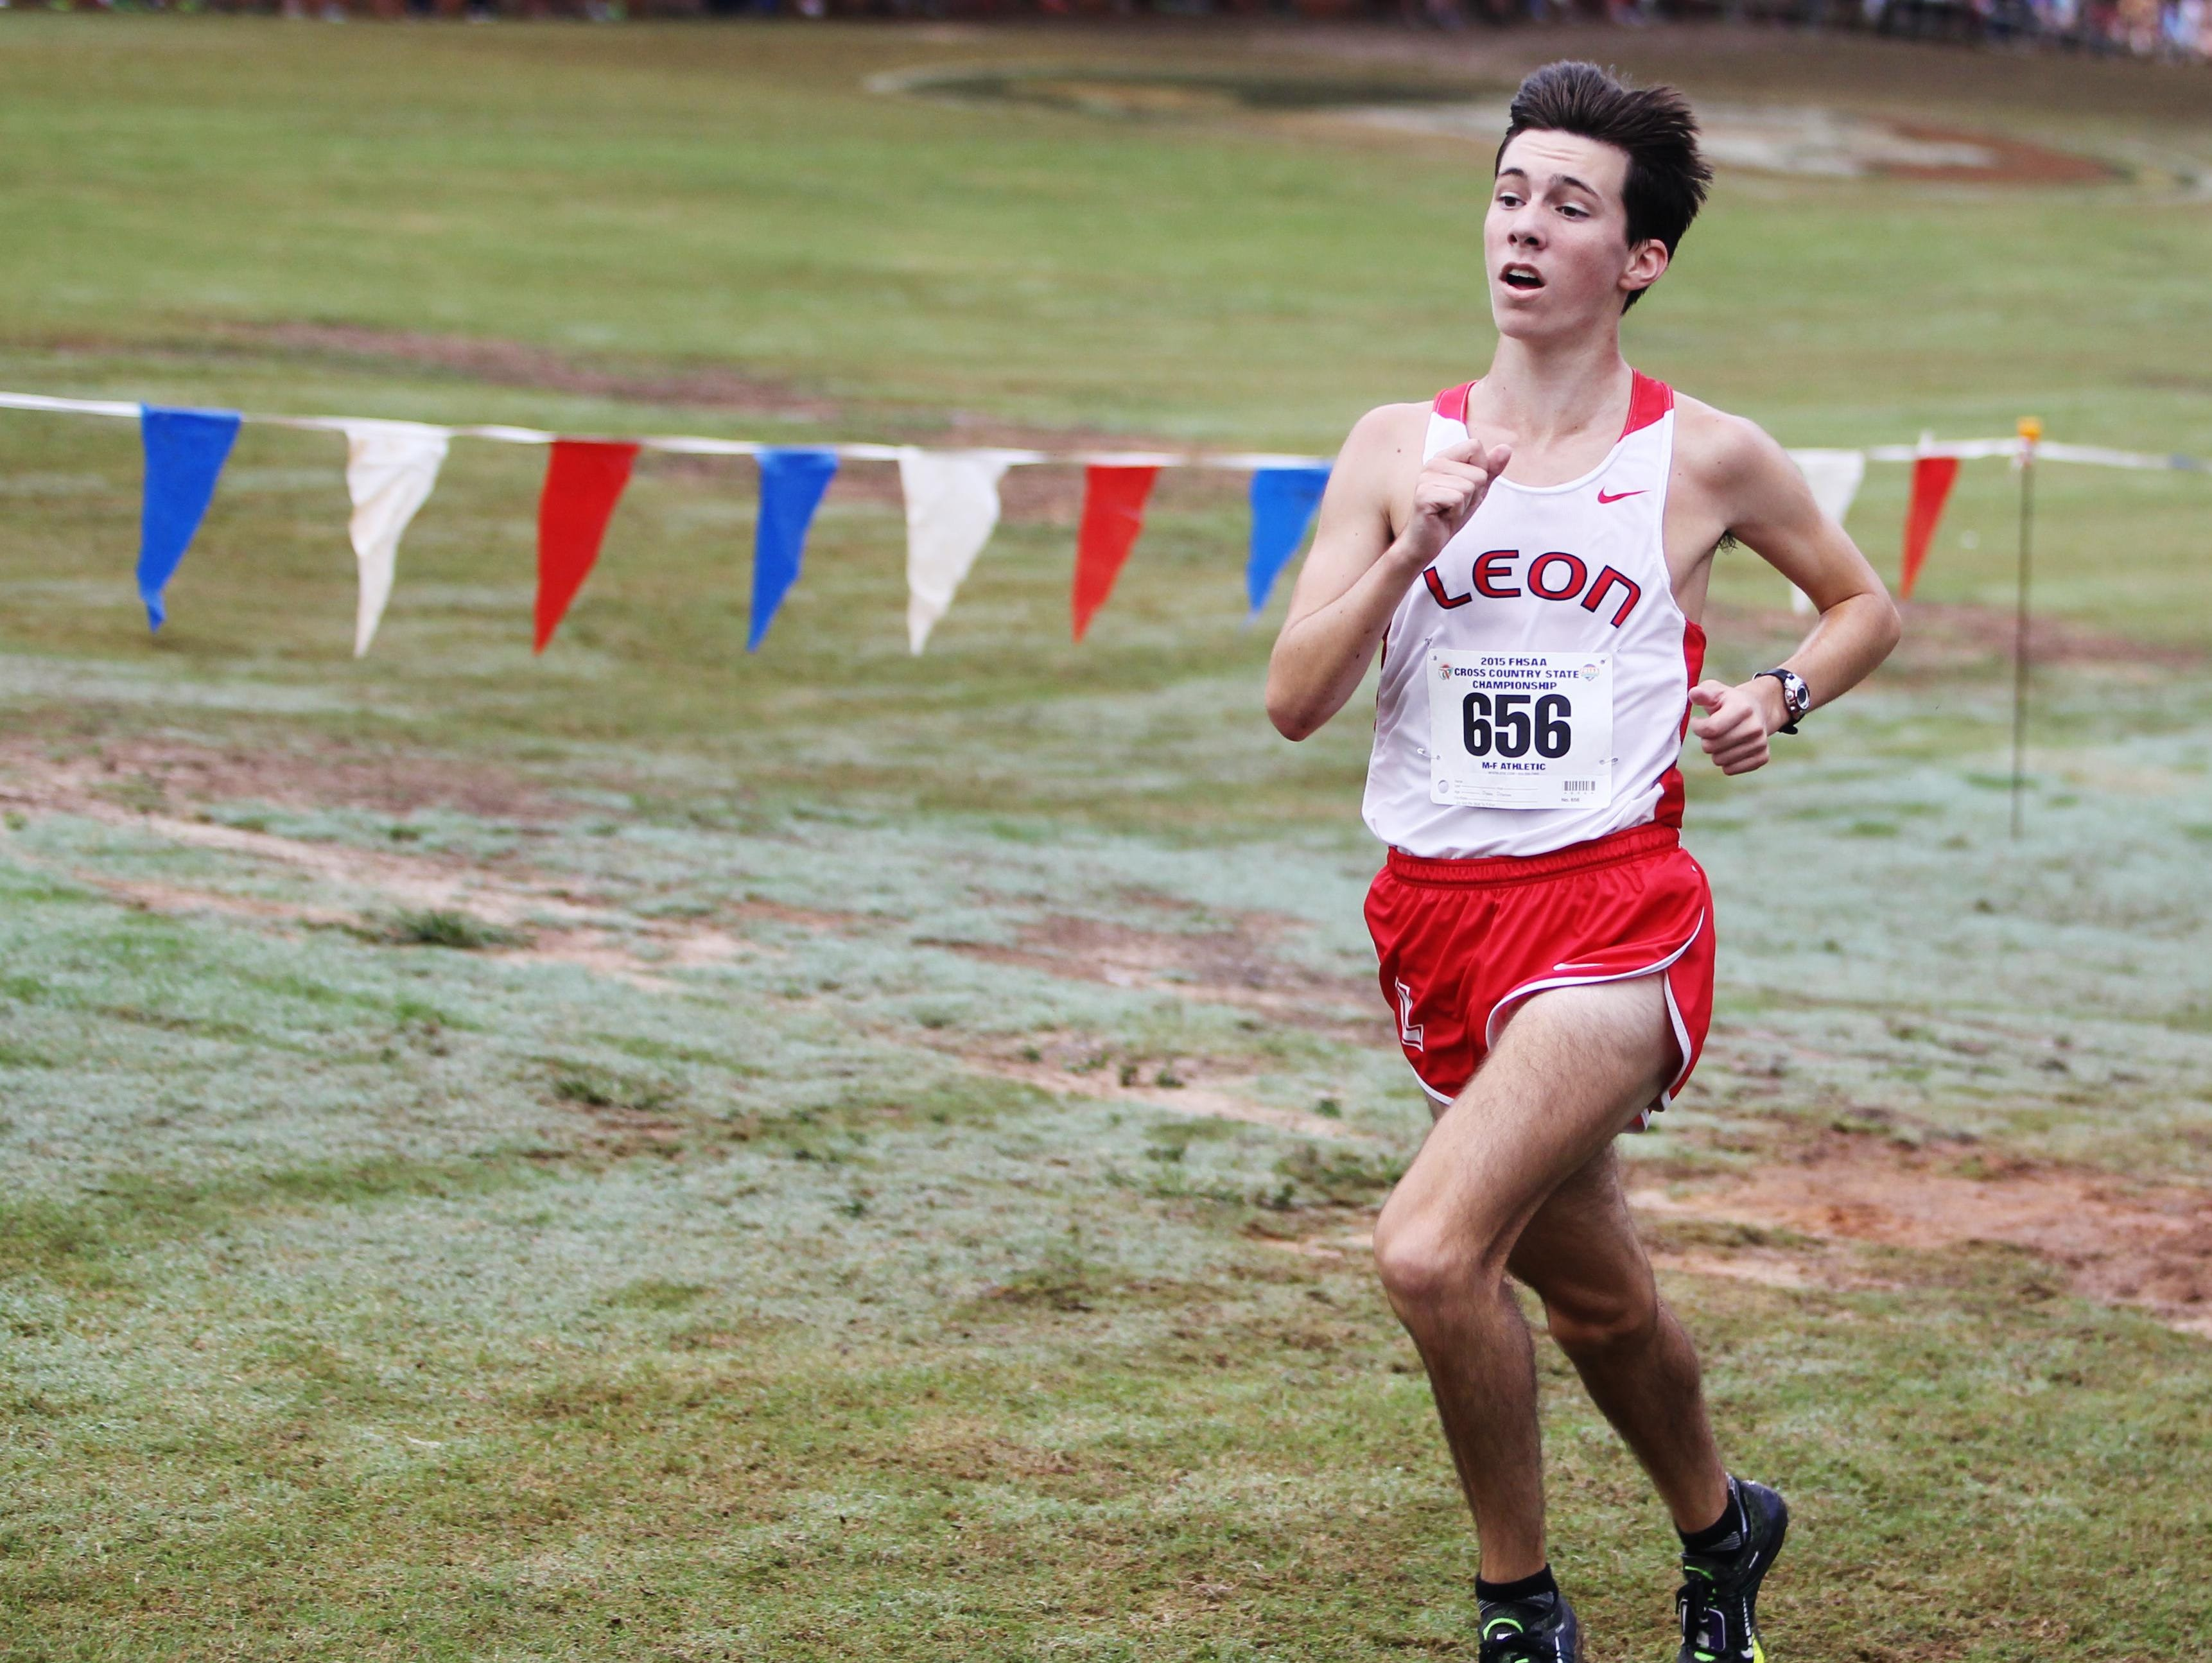 Leon junior Matthew Cashin completed a breakout season by finishing fourth in 3A during Saturday's FHSAA cross country finals.